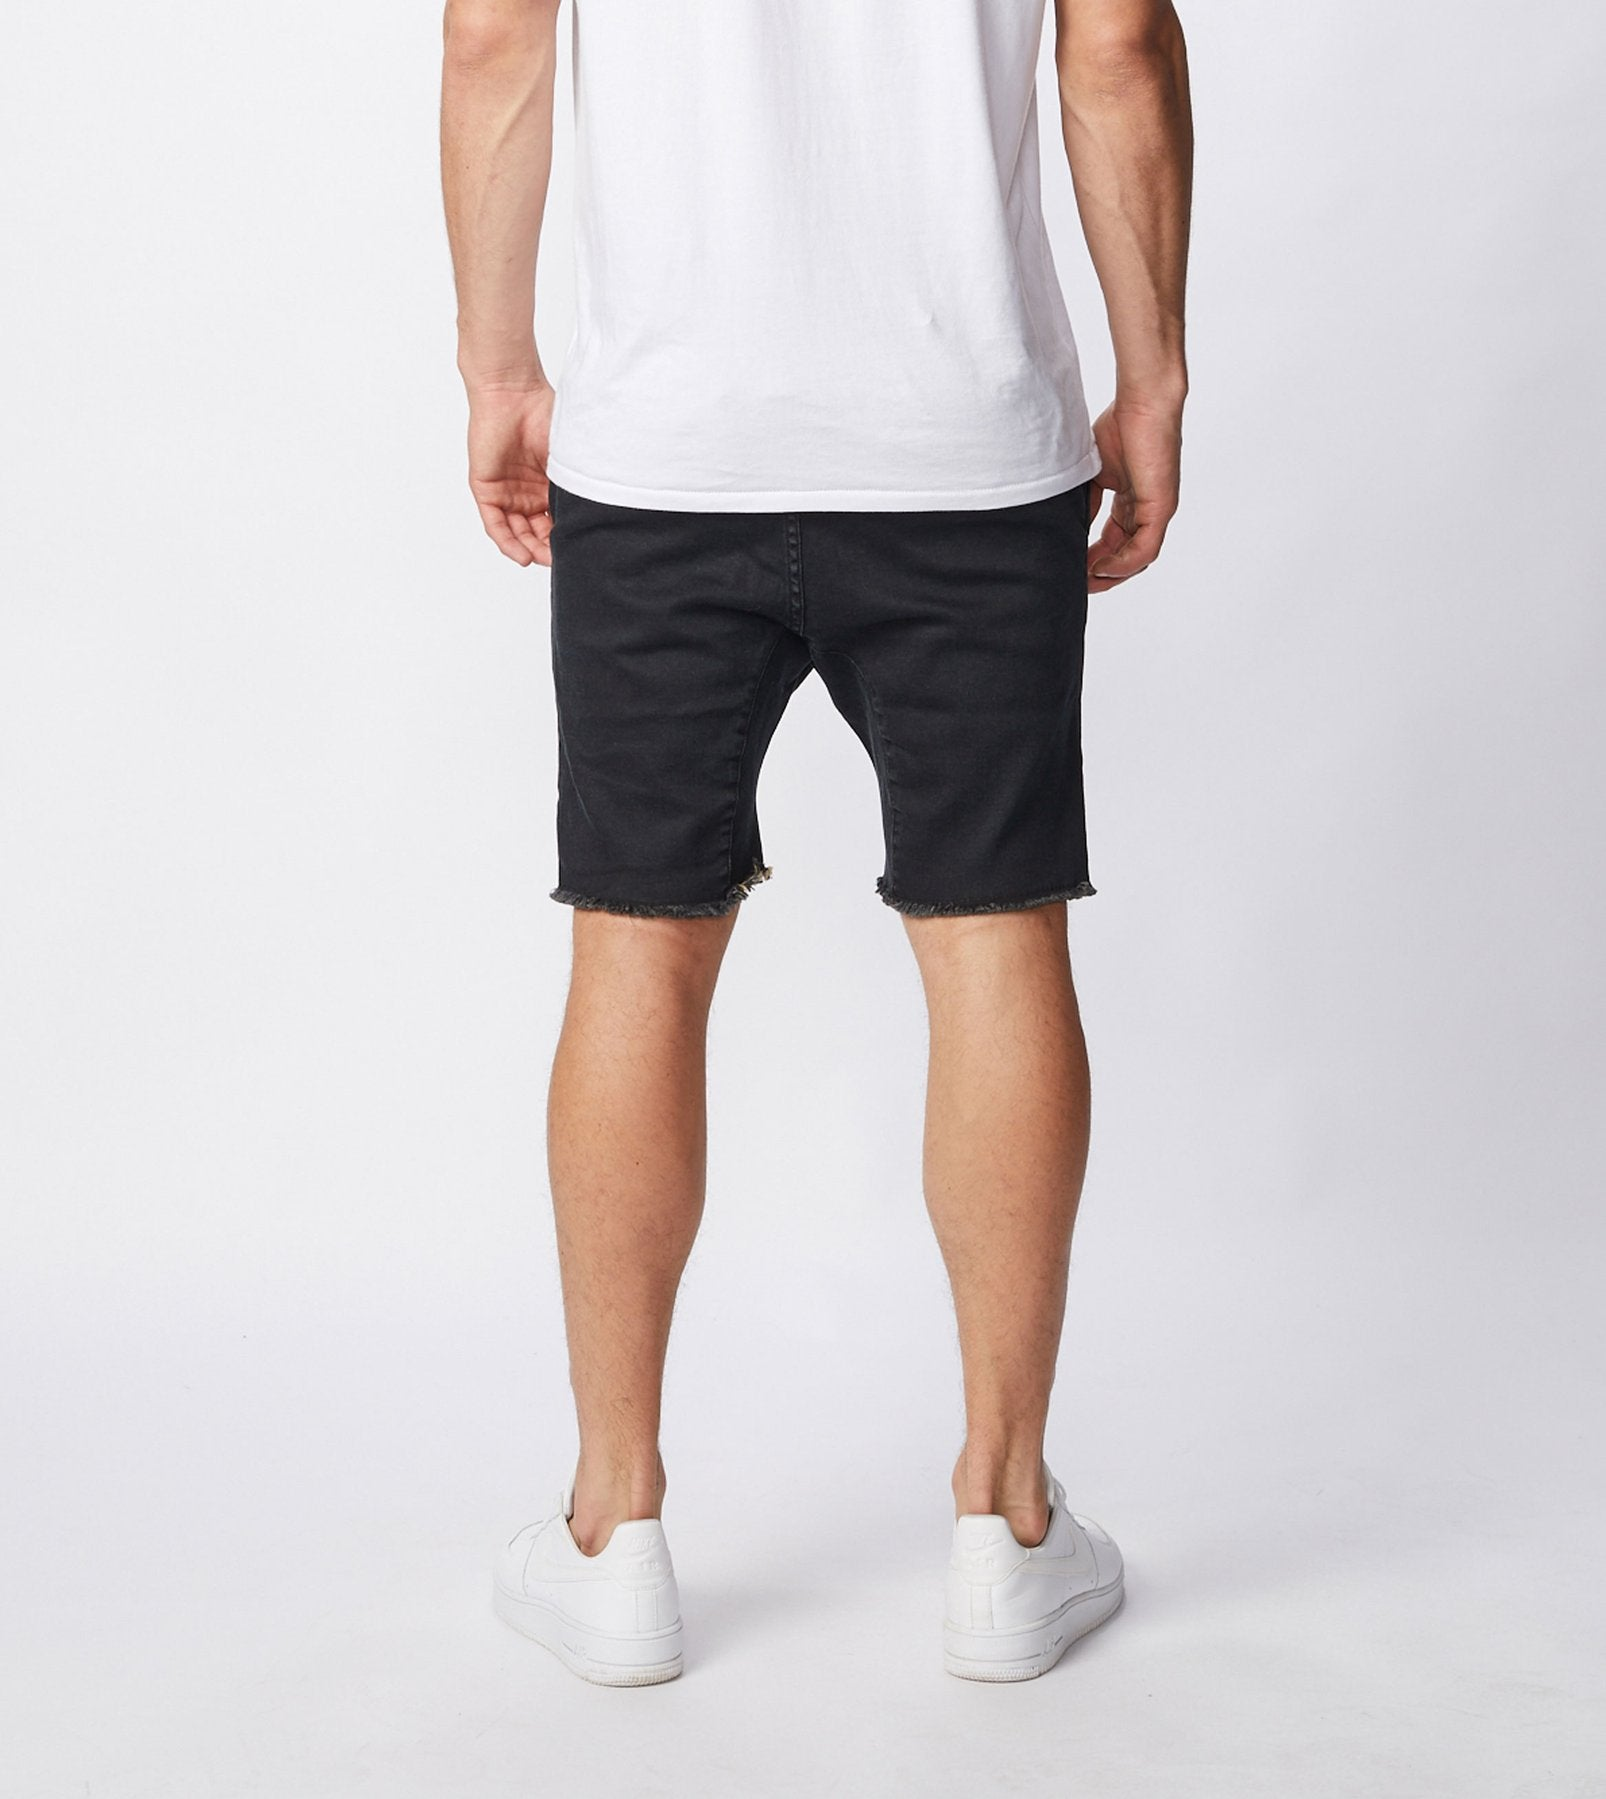 ZANEROBE M'S SHORTS SURESHOT SHORT - BLACK WASH